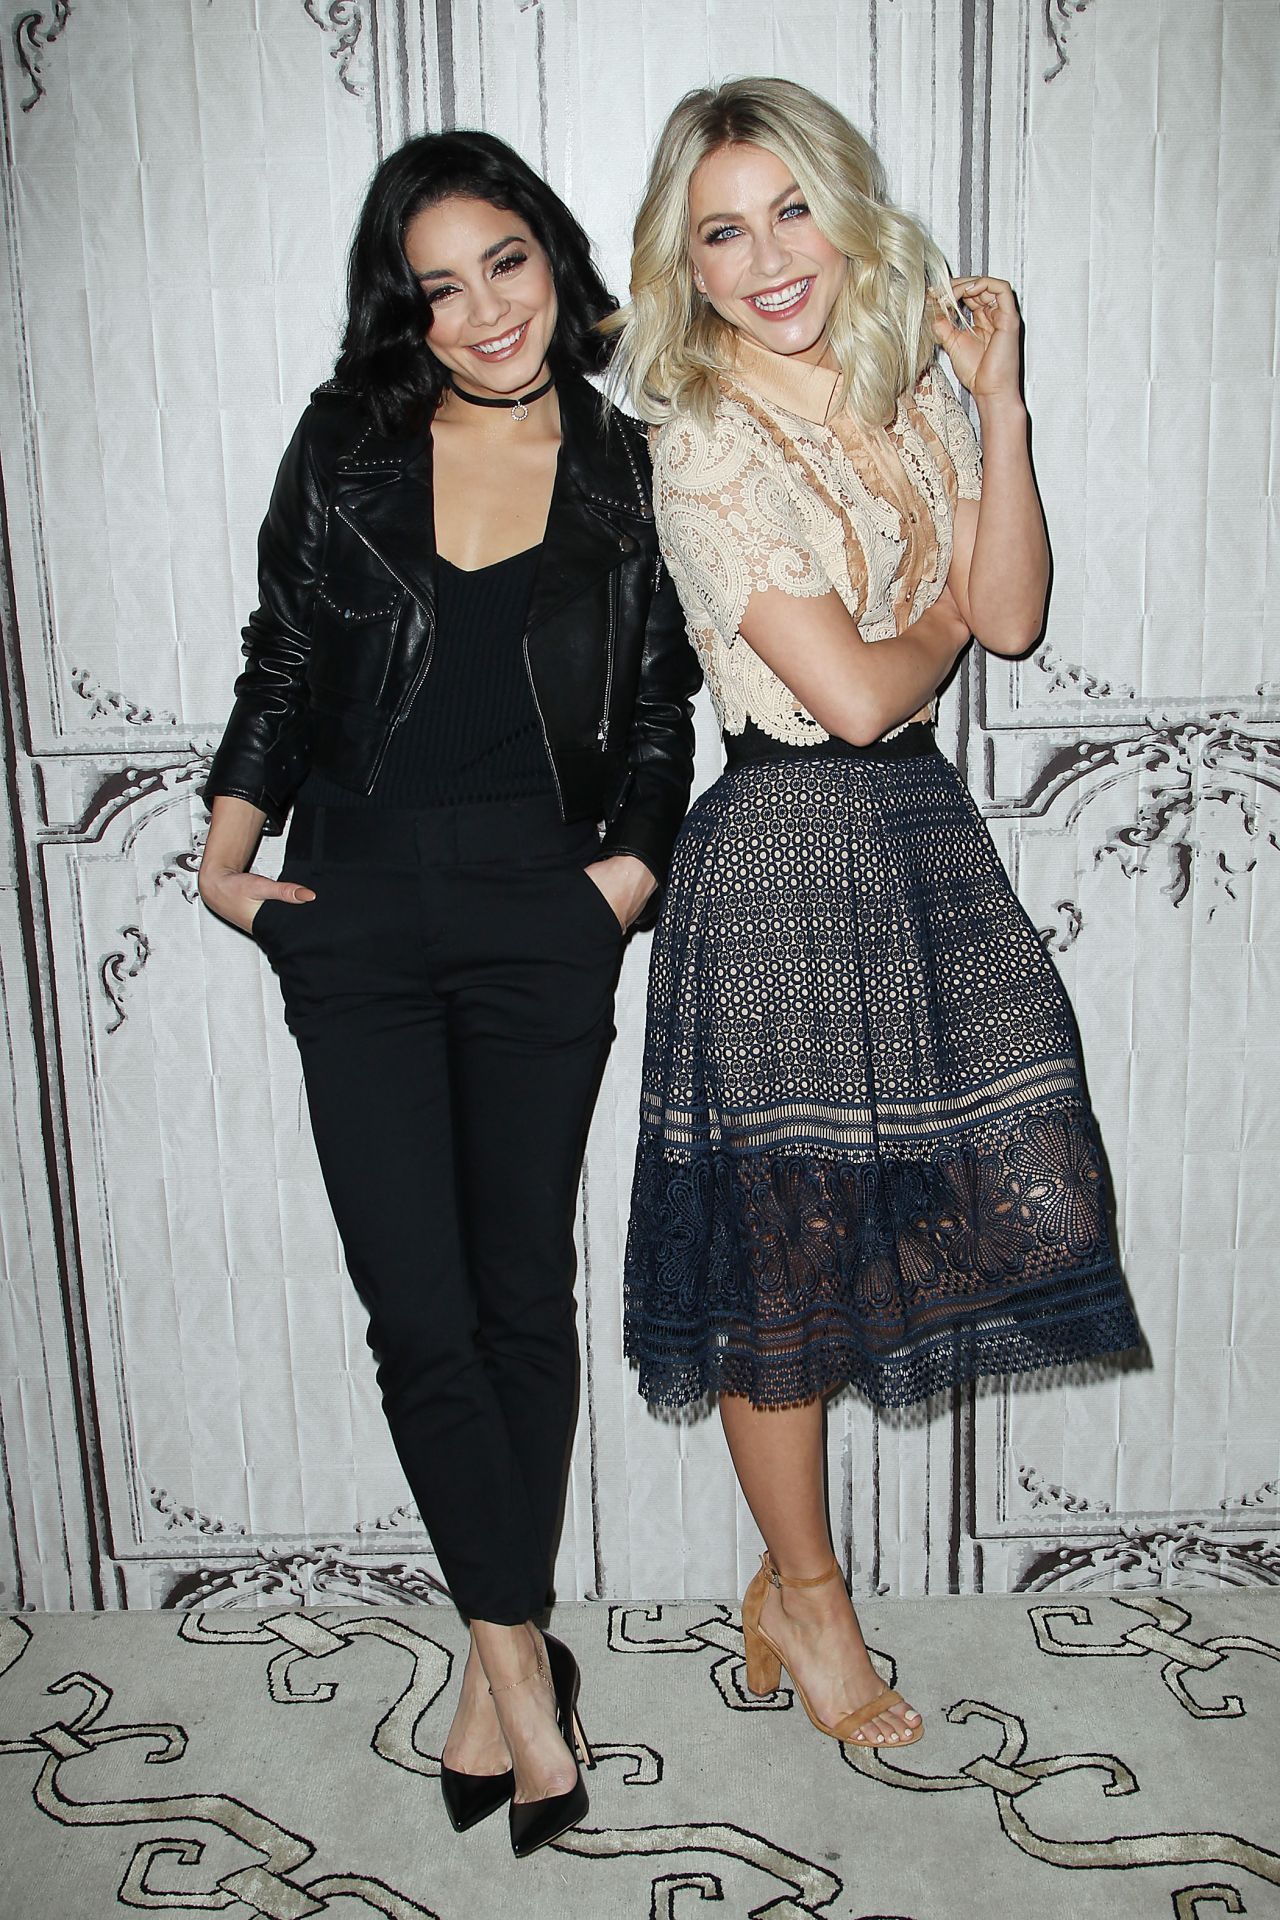 vanessa-hudgens-and-julianne-hough-grease-live-at-aol-studios-in-new-york-city-5